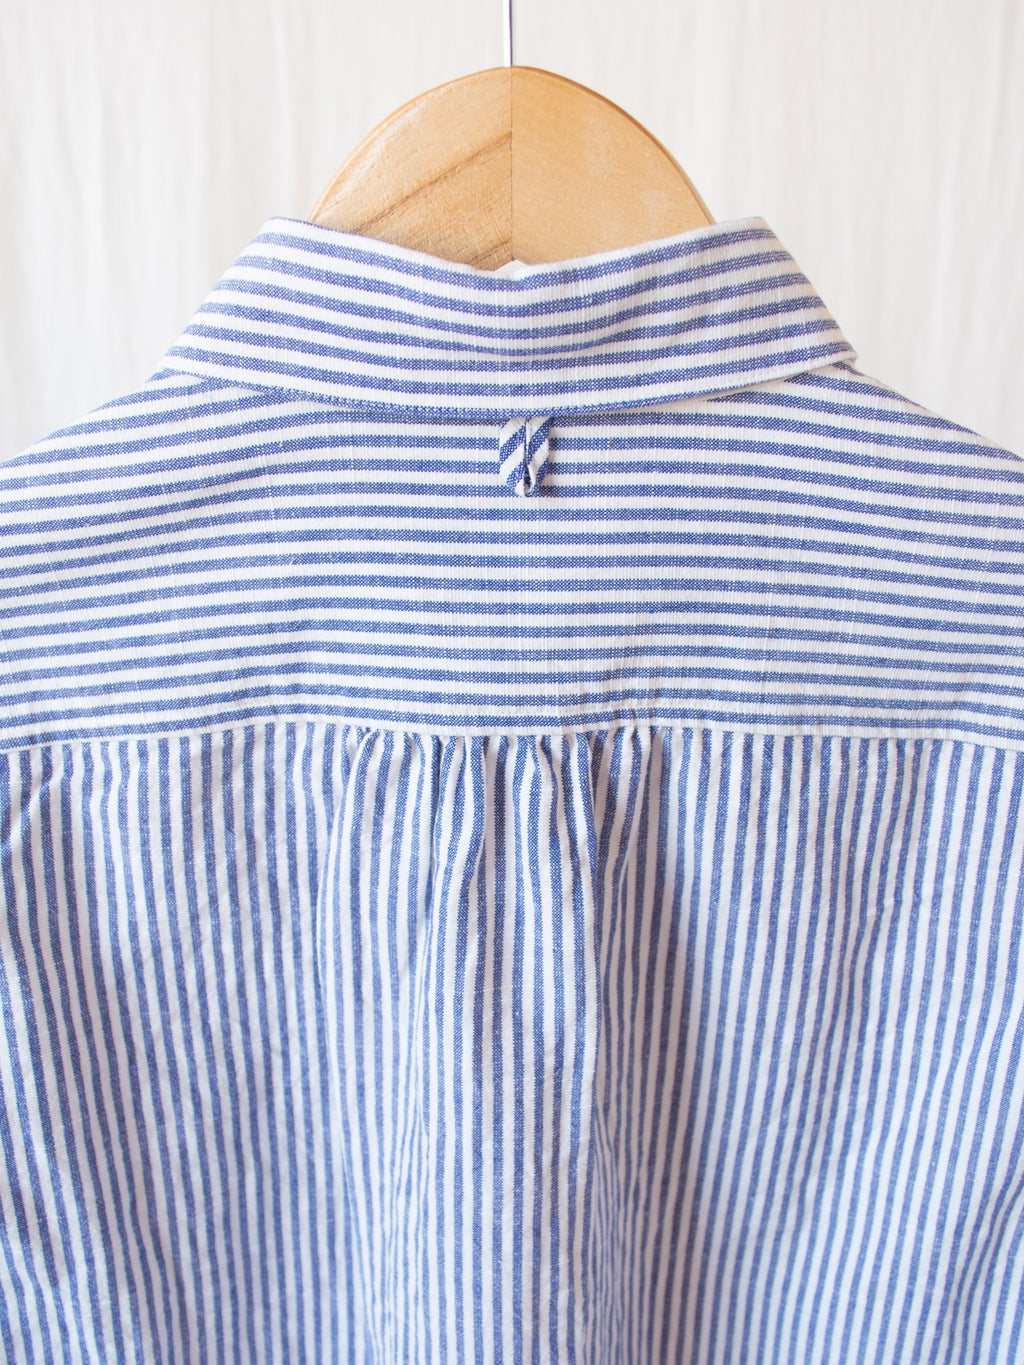 Namu Shop - Maillot Sunset Work Shirt - White x Blue Stripe